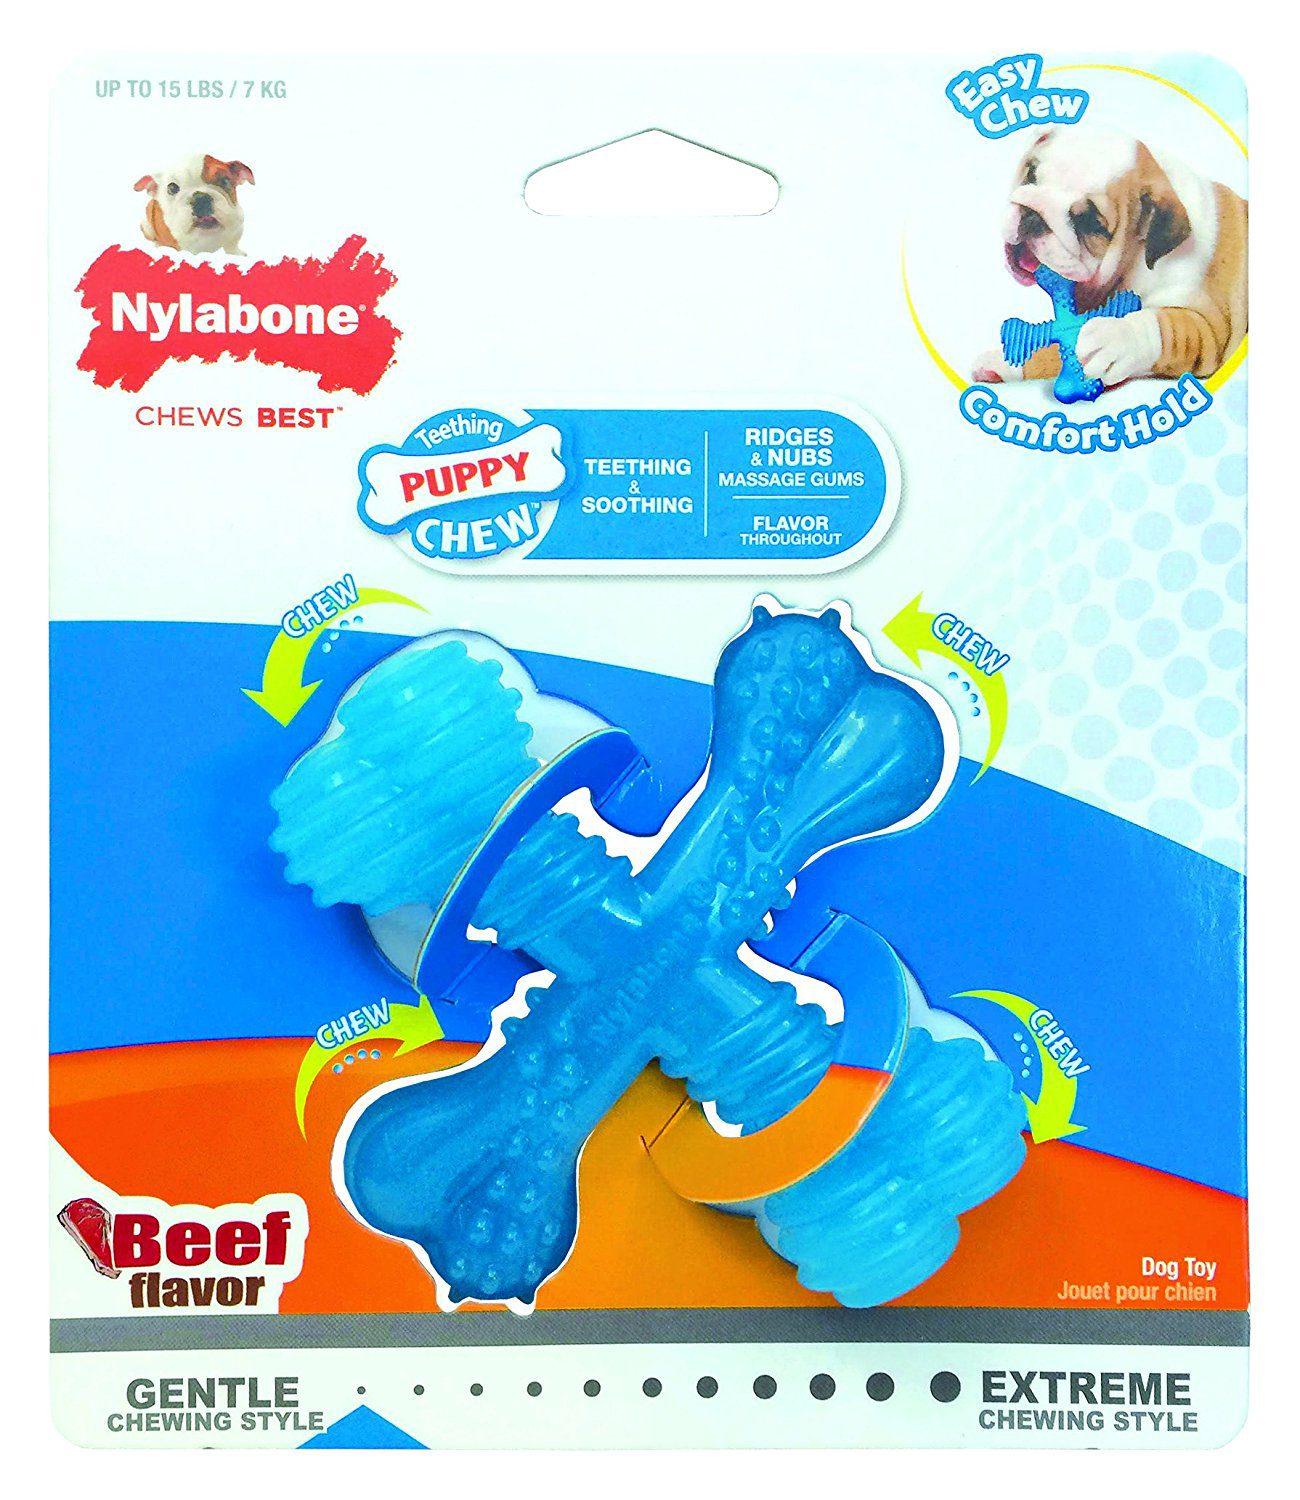 Nylabone puppy toy